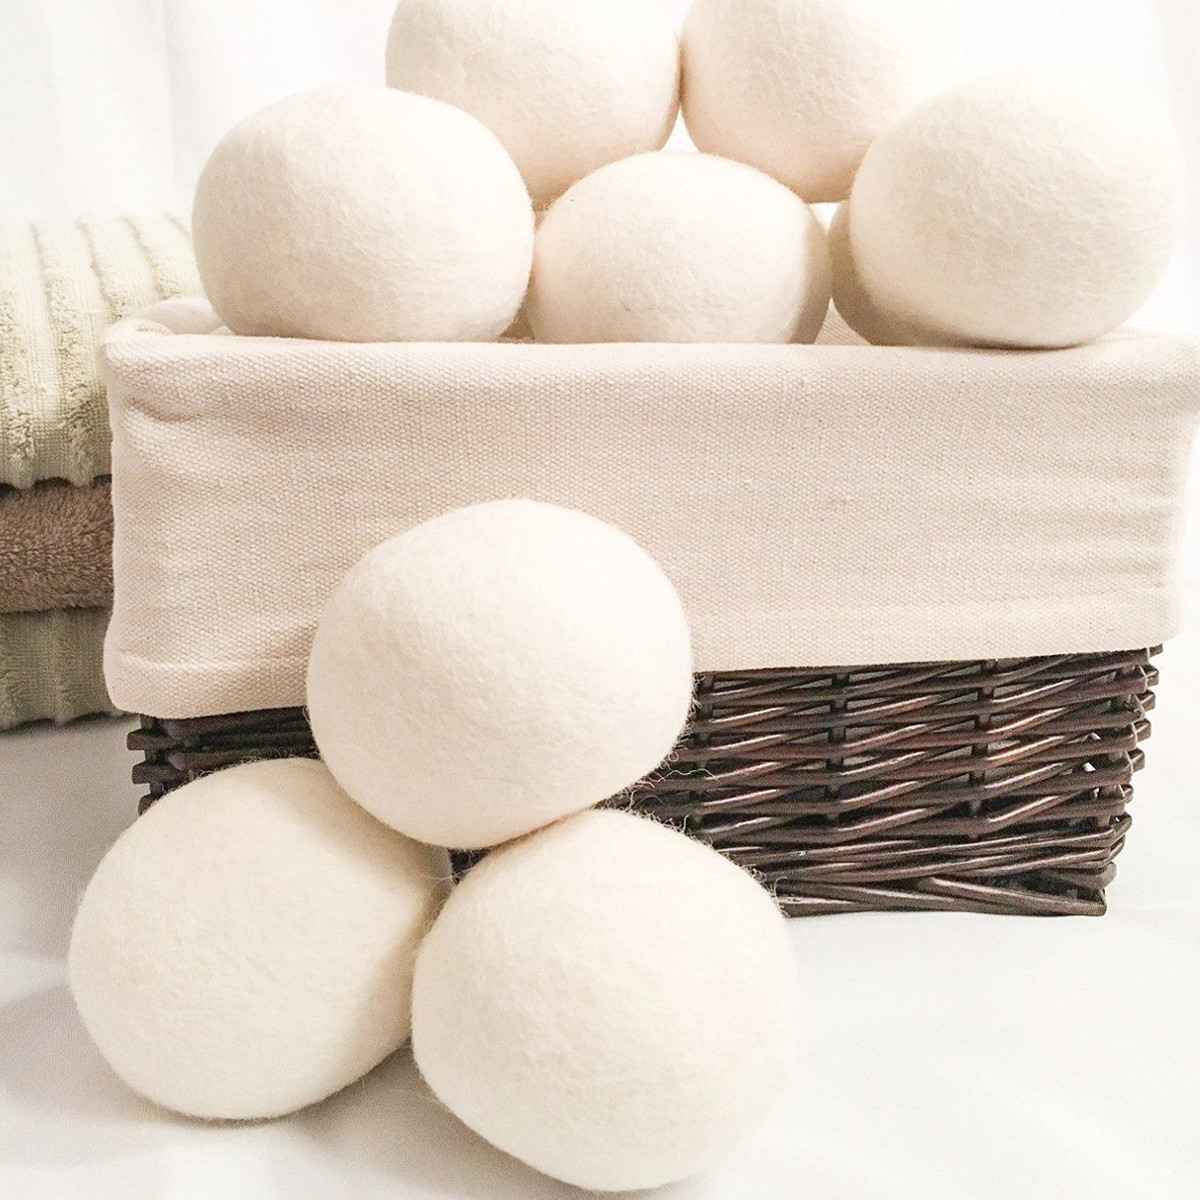 8pcs XL Wool Dryer Balls 100% Natural Fabric Softener Ball for Clothes Dry